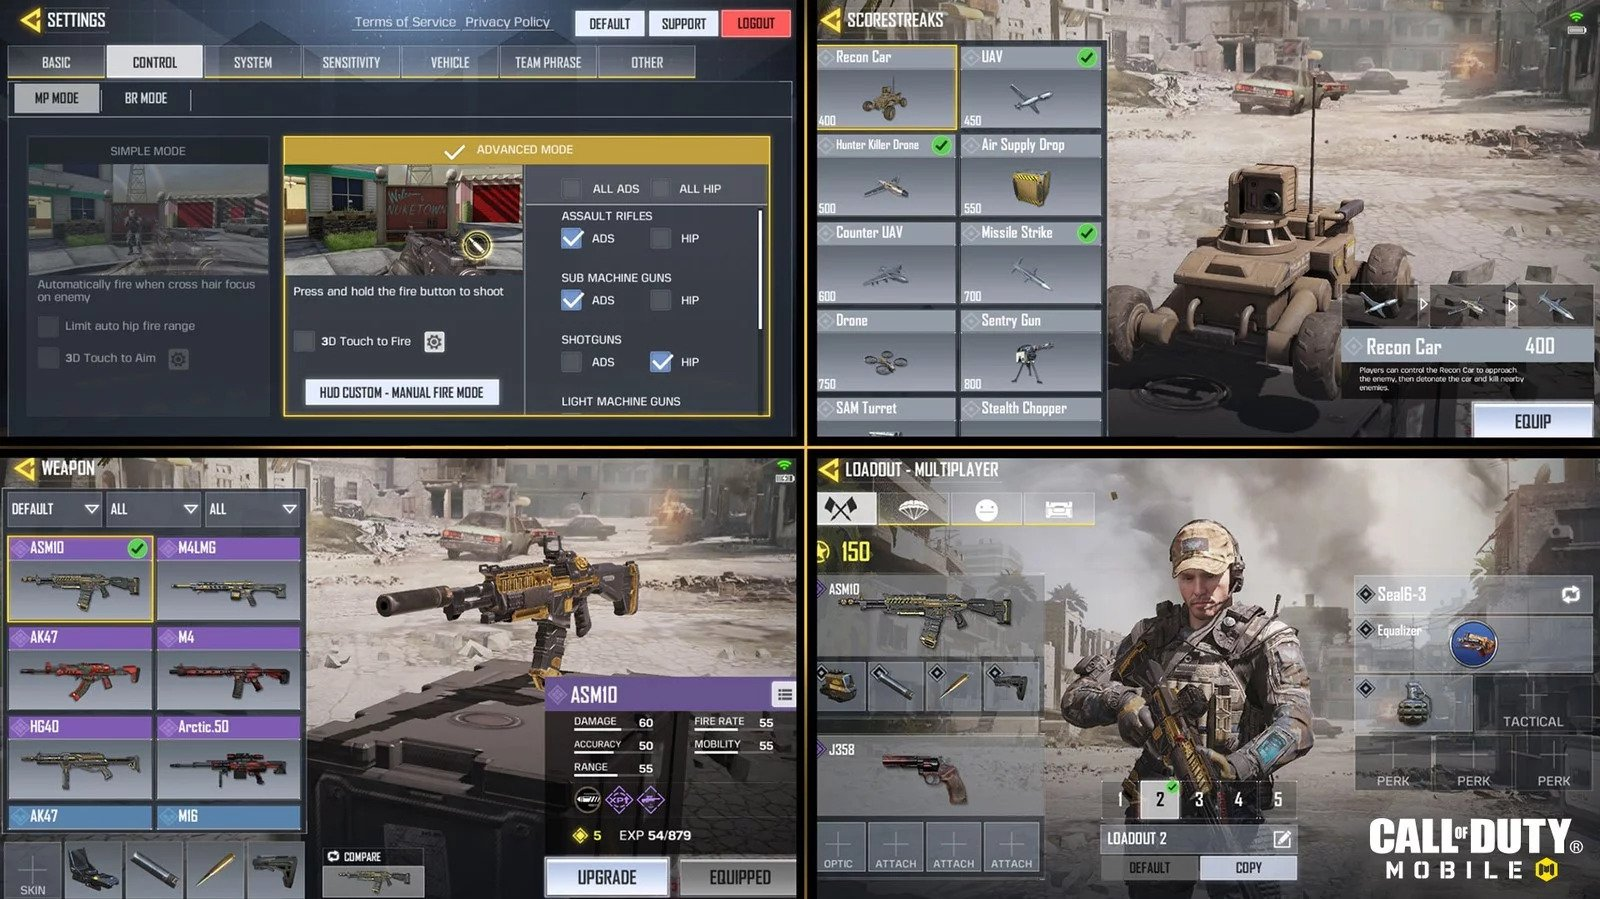 Call of Duty Mobile Layout